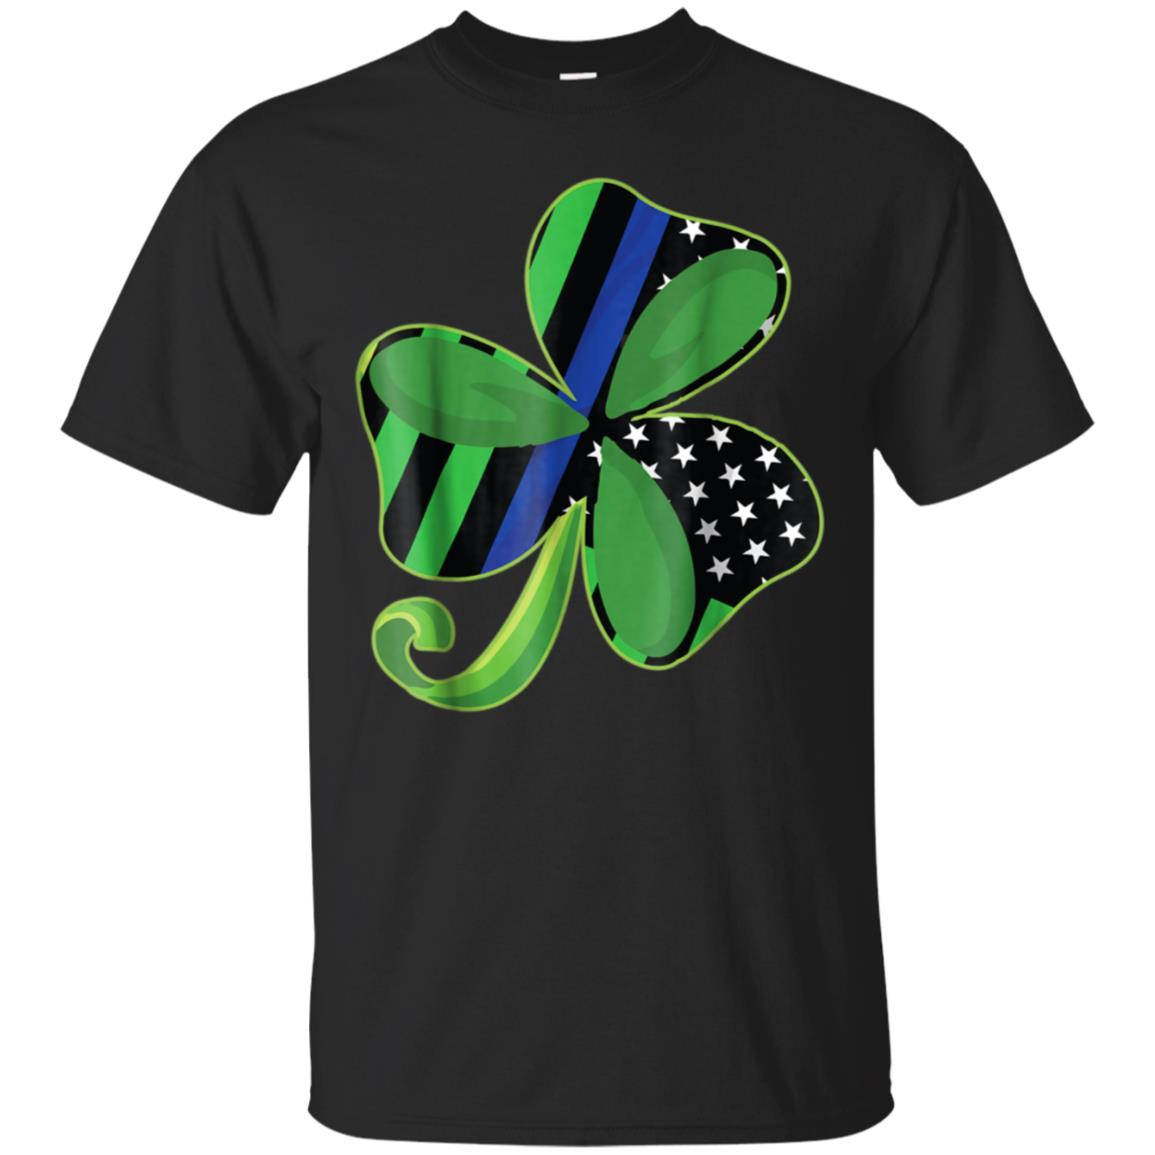 Thin Blue Line St Patrick's Day Clover Gift T-Shirt 99promocode